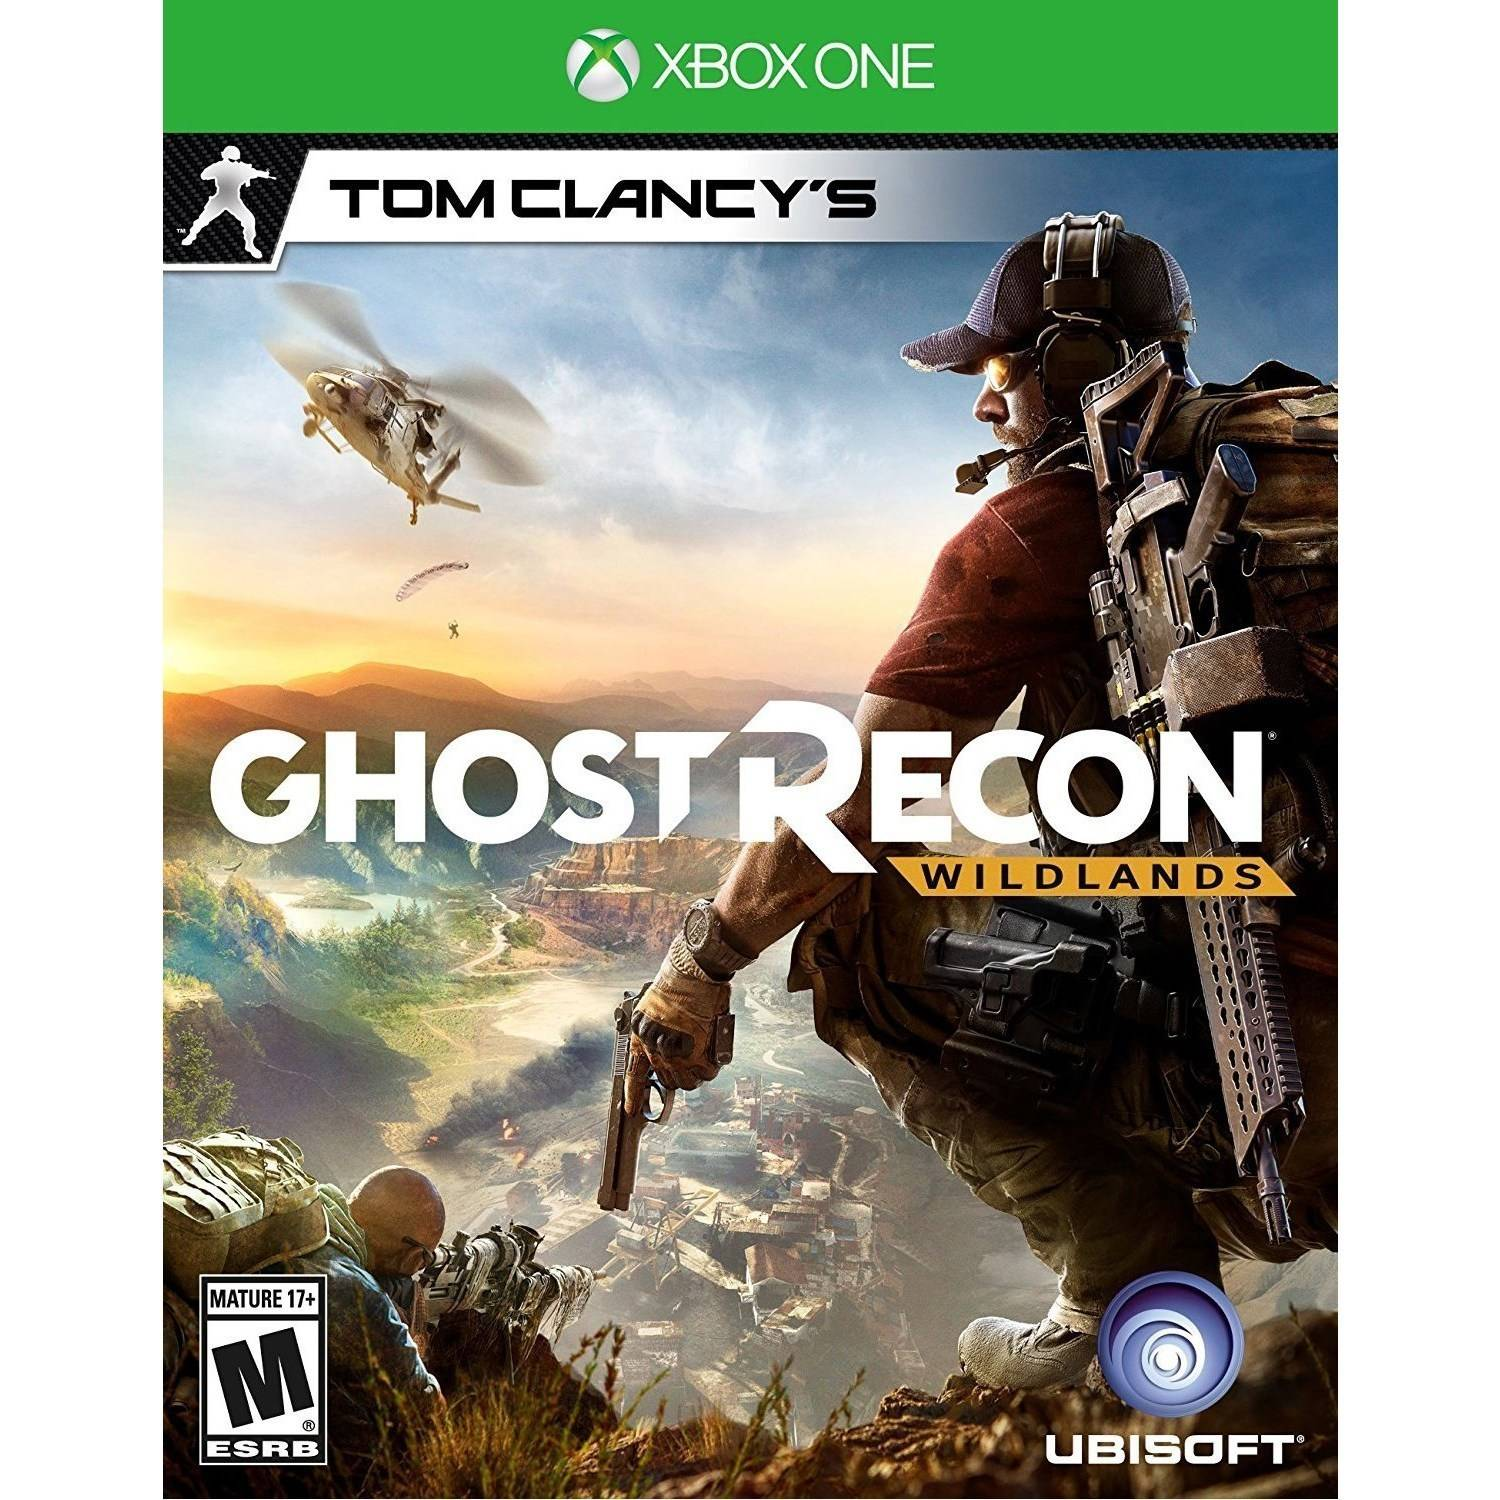 Tom Clancy's Ghost Recon Wildlands (Xbox One) Ubisoft, 887256015732